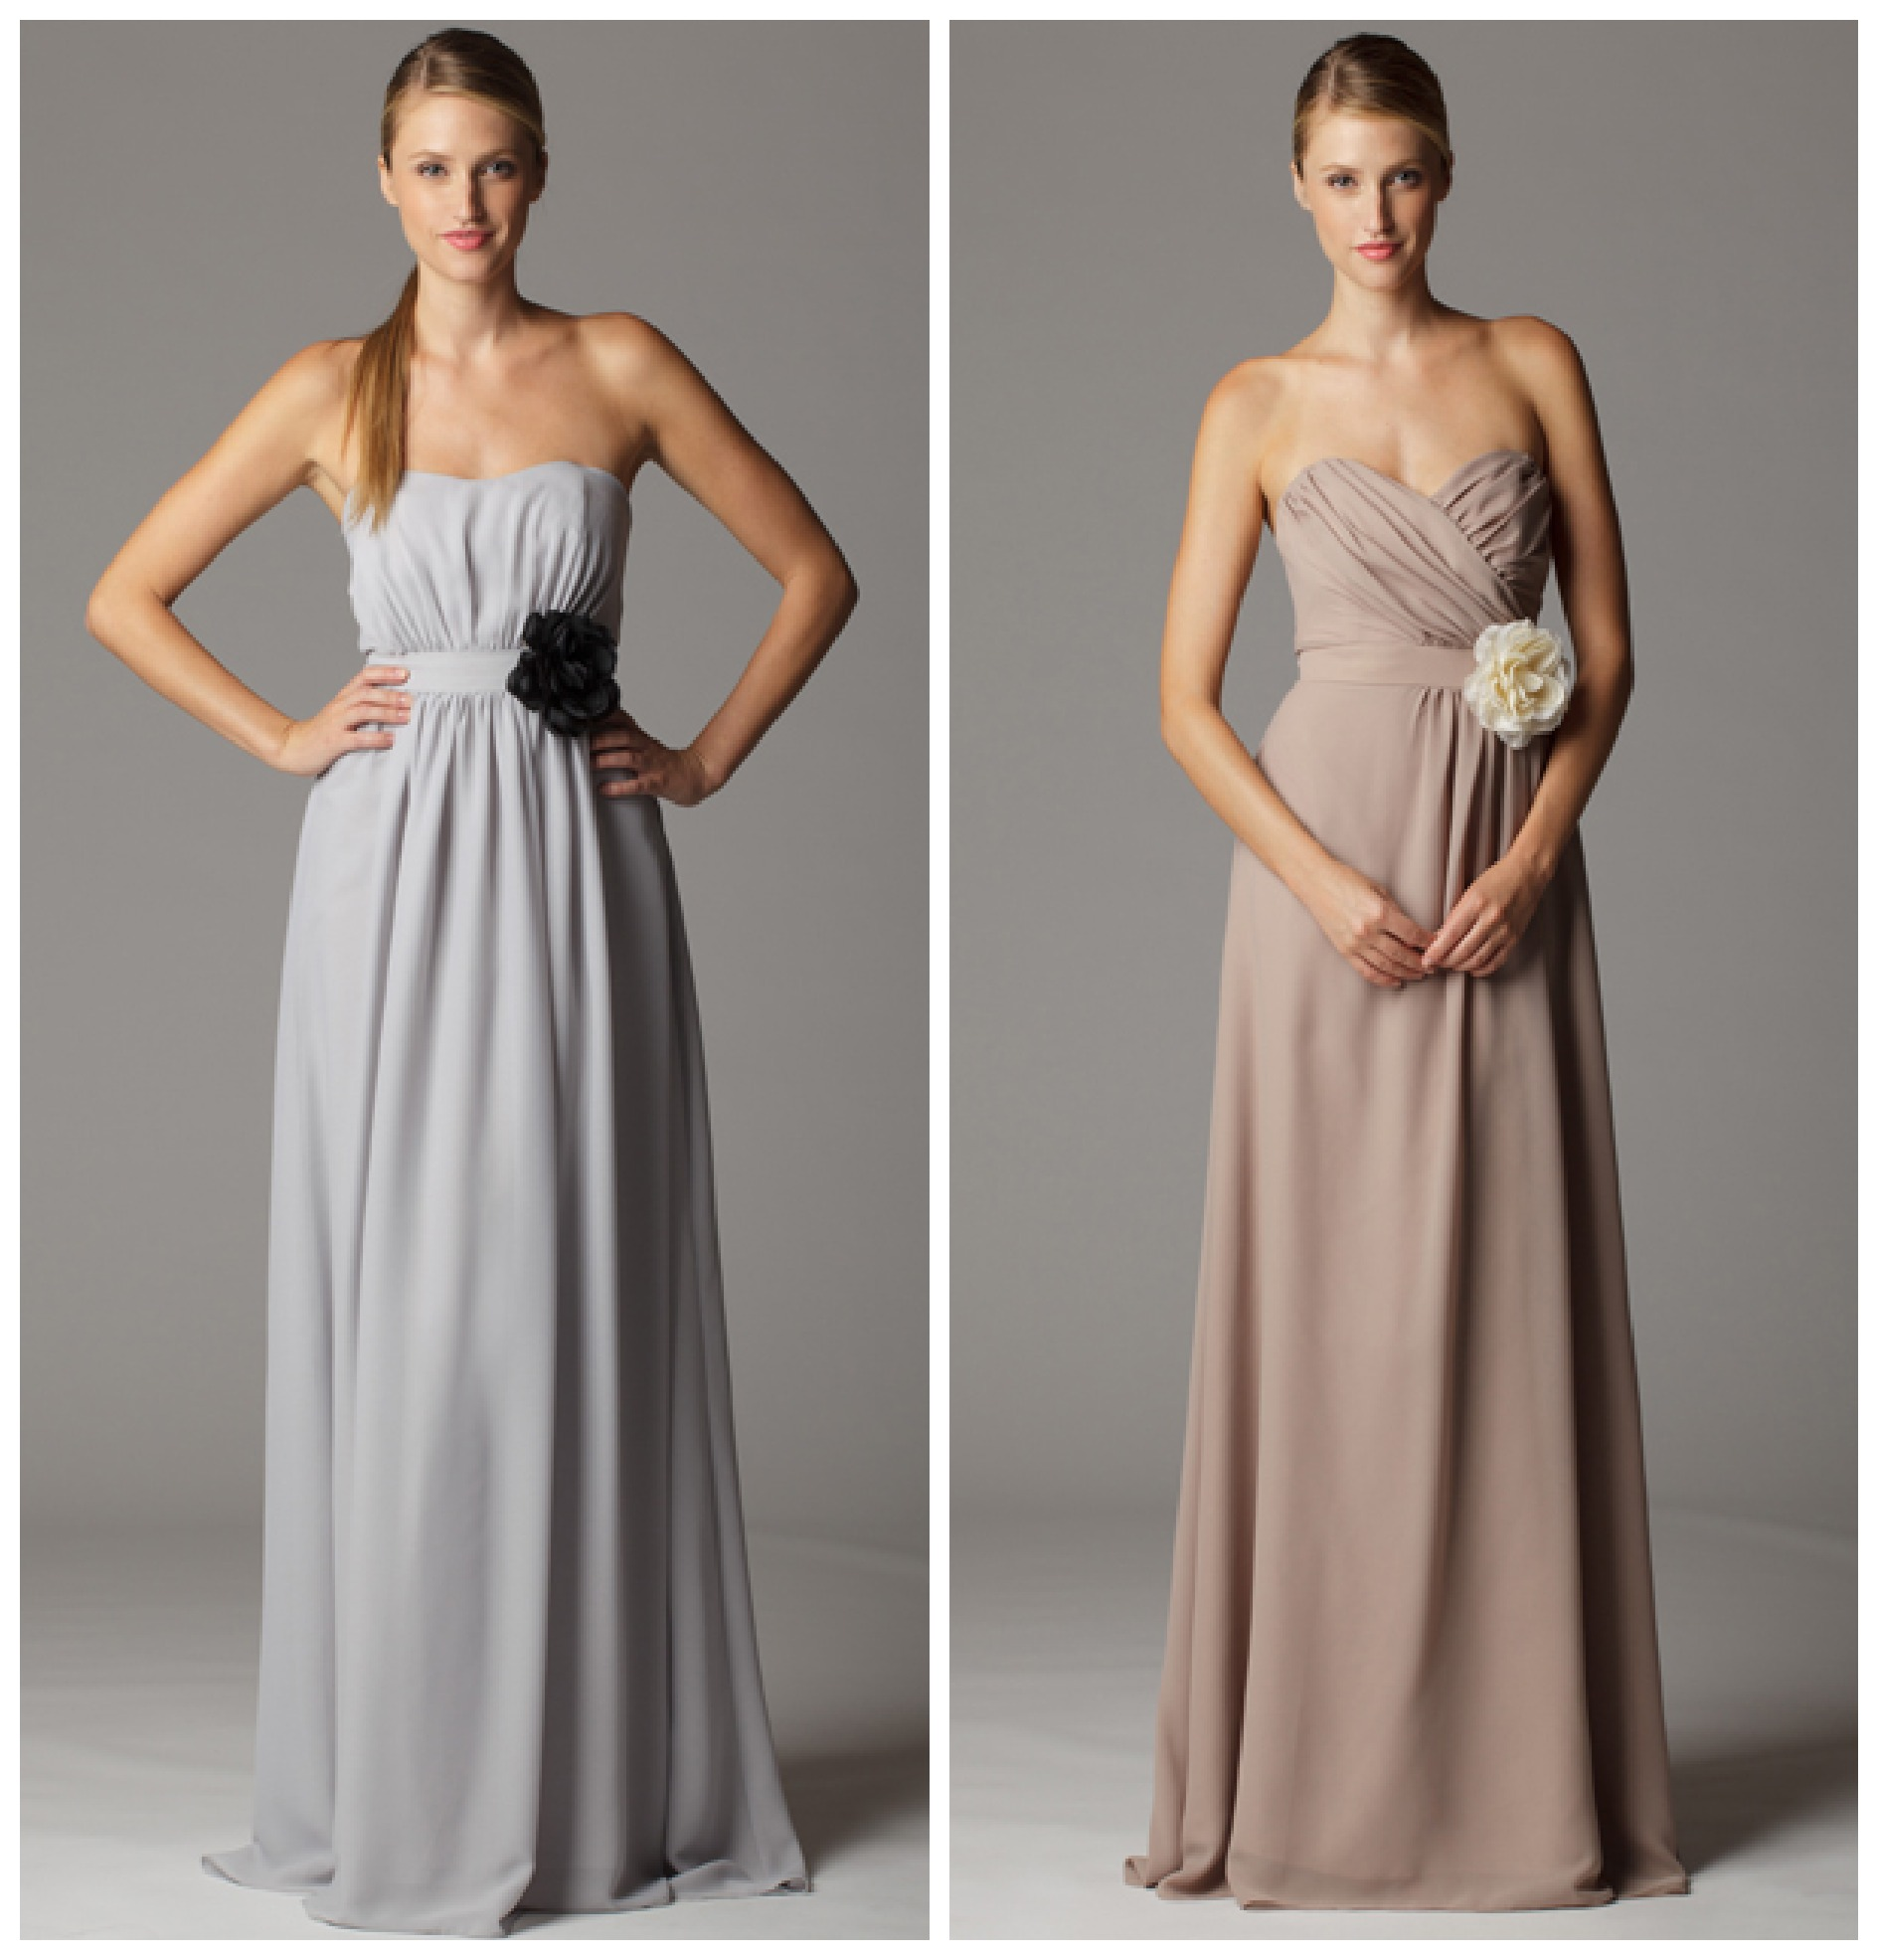 Ask maggie soft flowy bridesmaid dresses